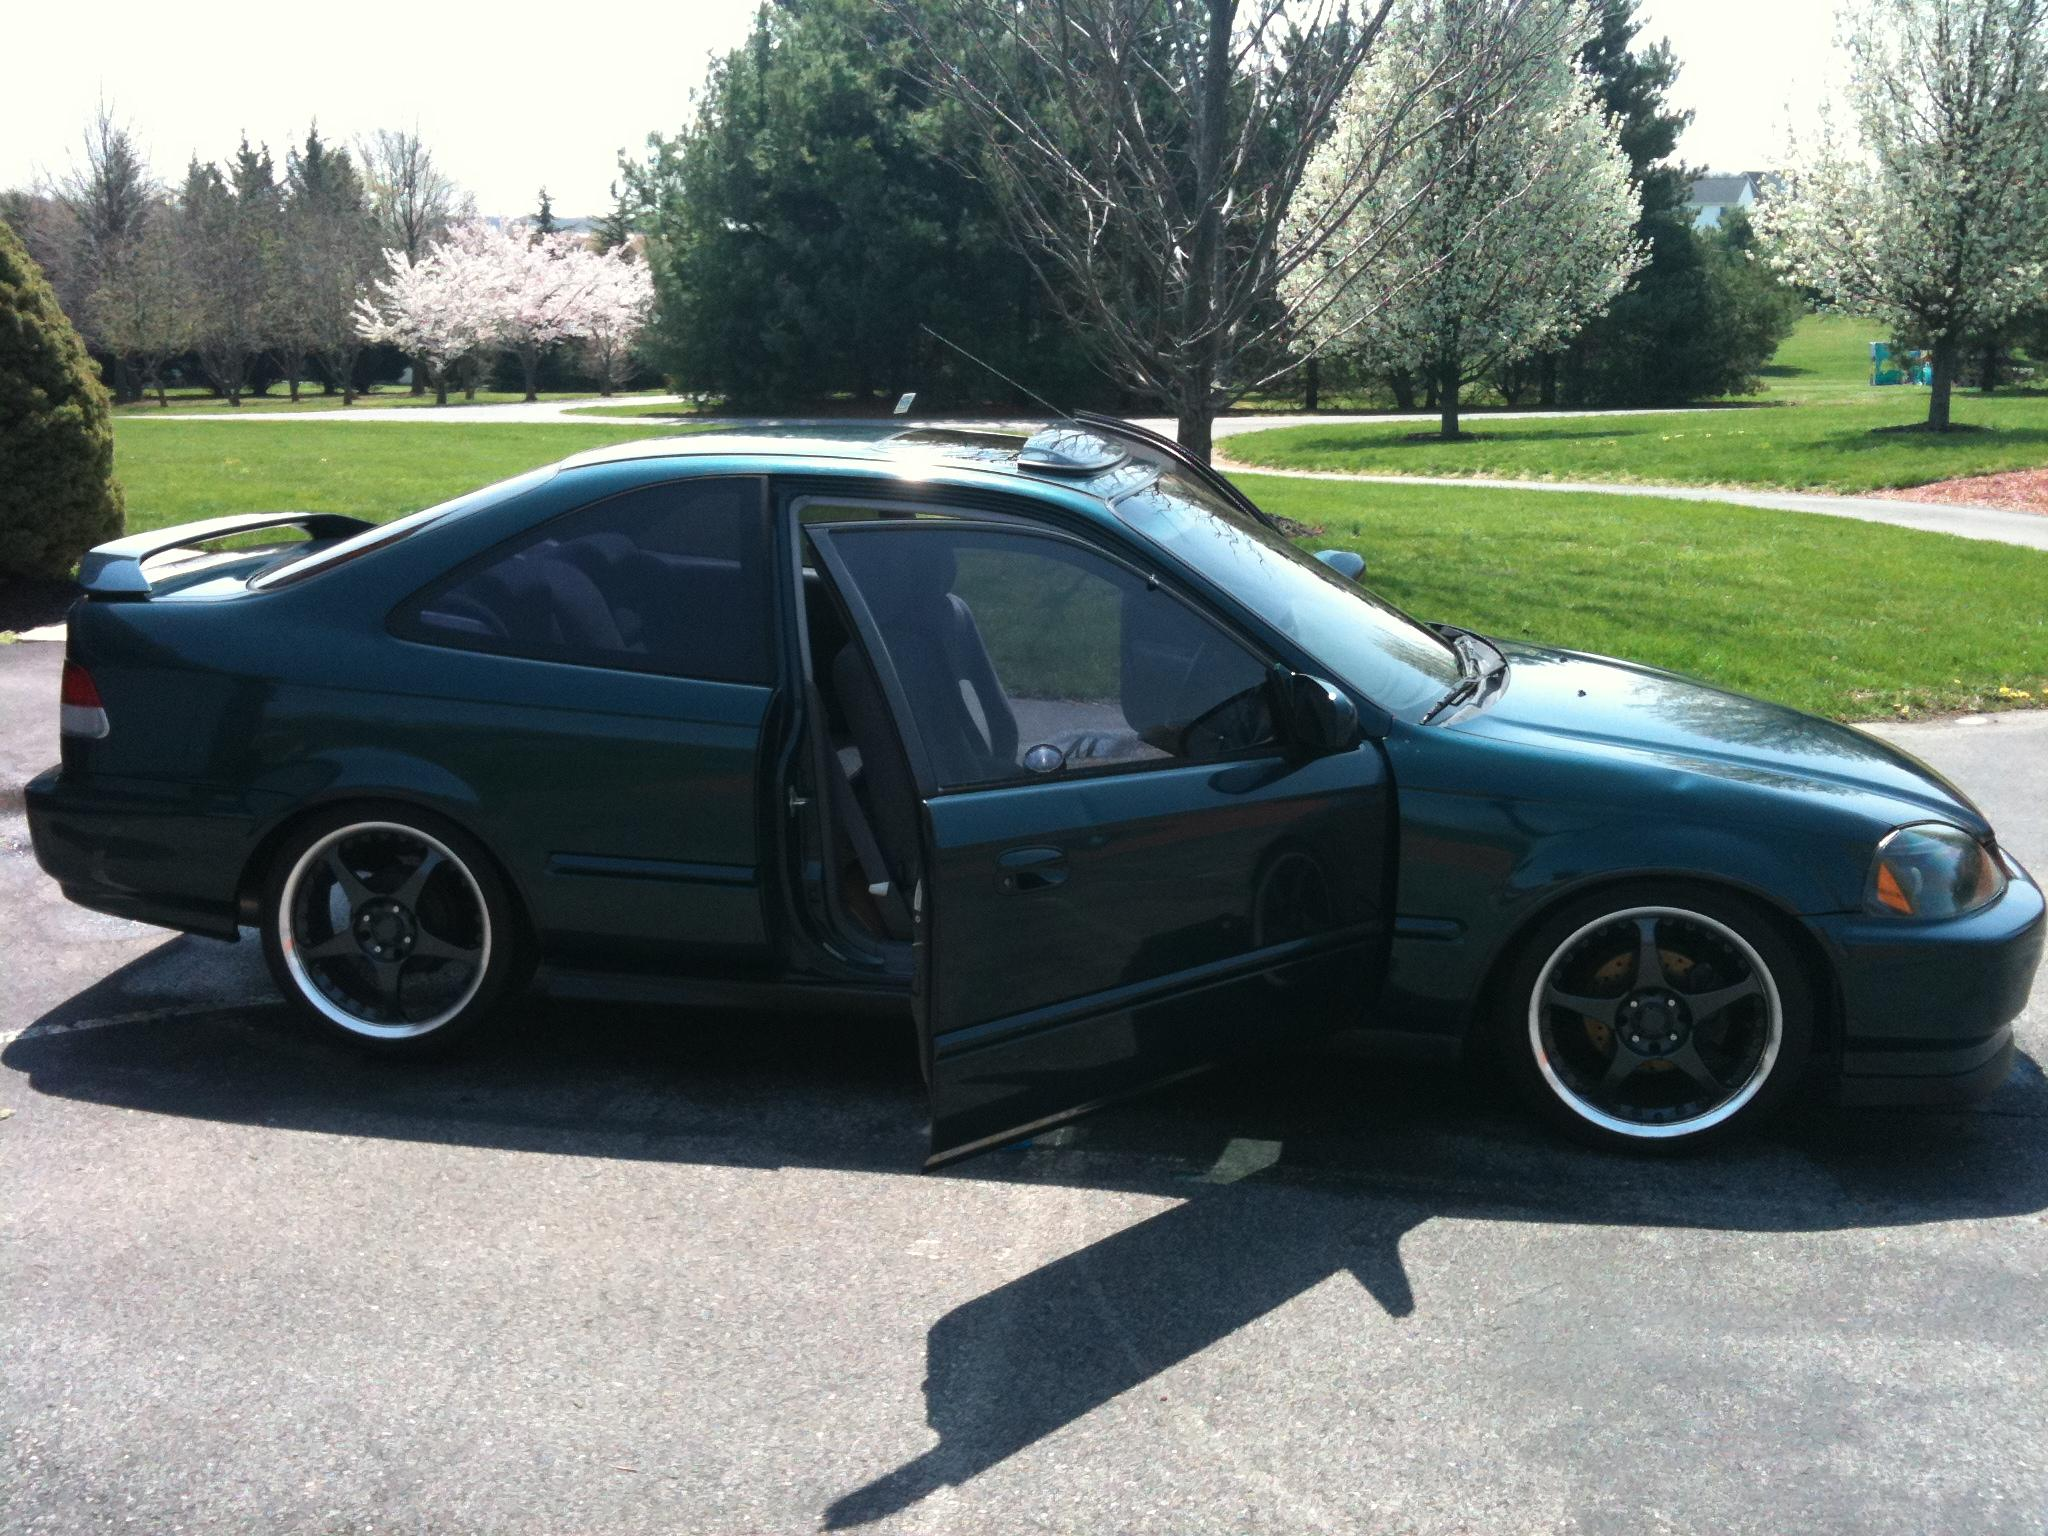 rionparker 1997 honda civicex coupe 2d specs photos modification info at cardomain. Black Bedroom Furniture Sets. Home Design Ideas